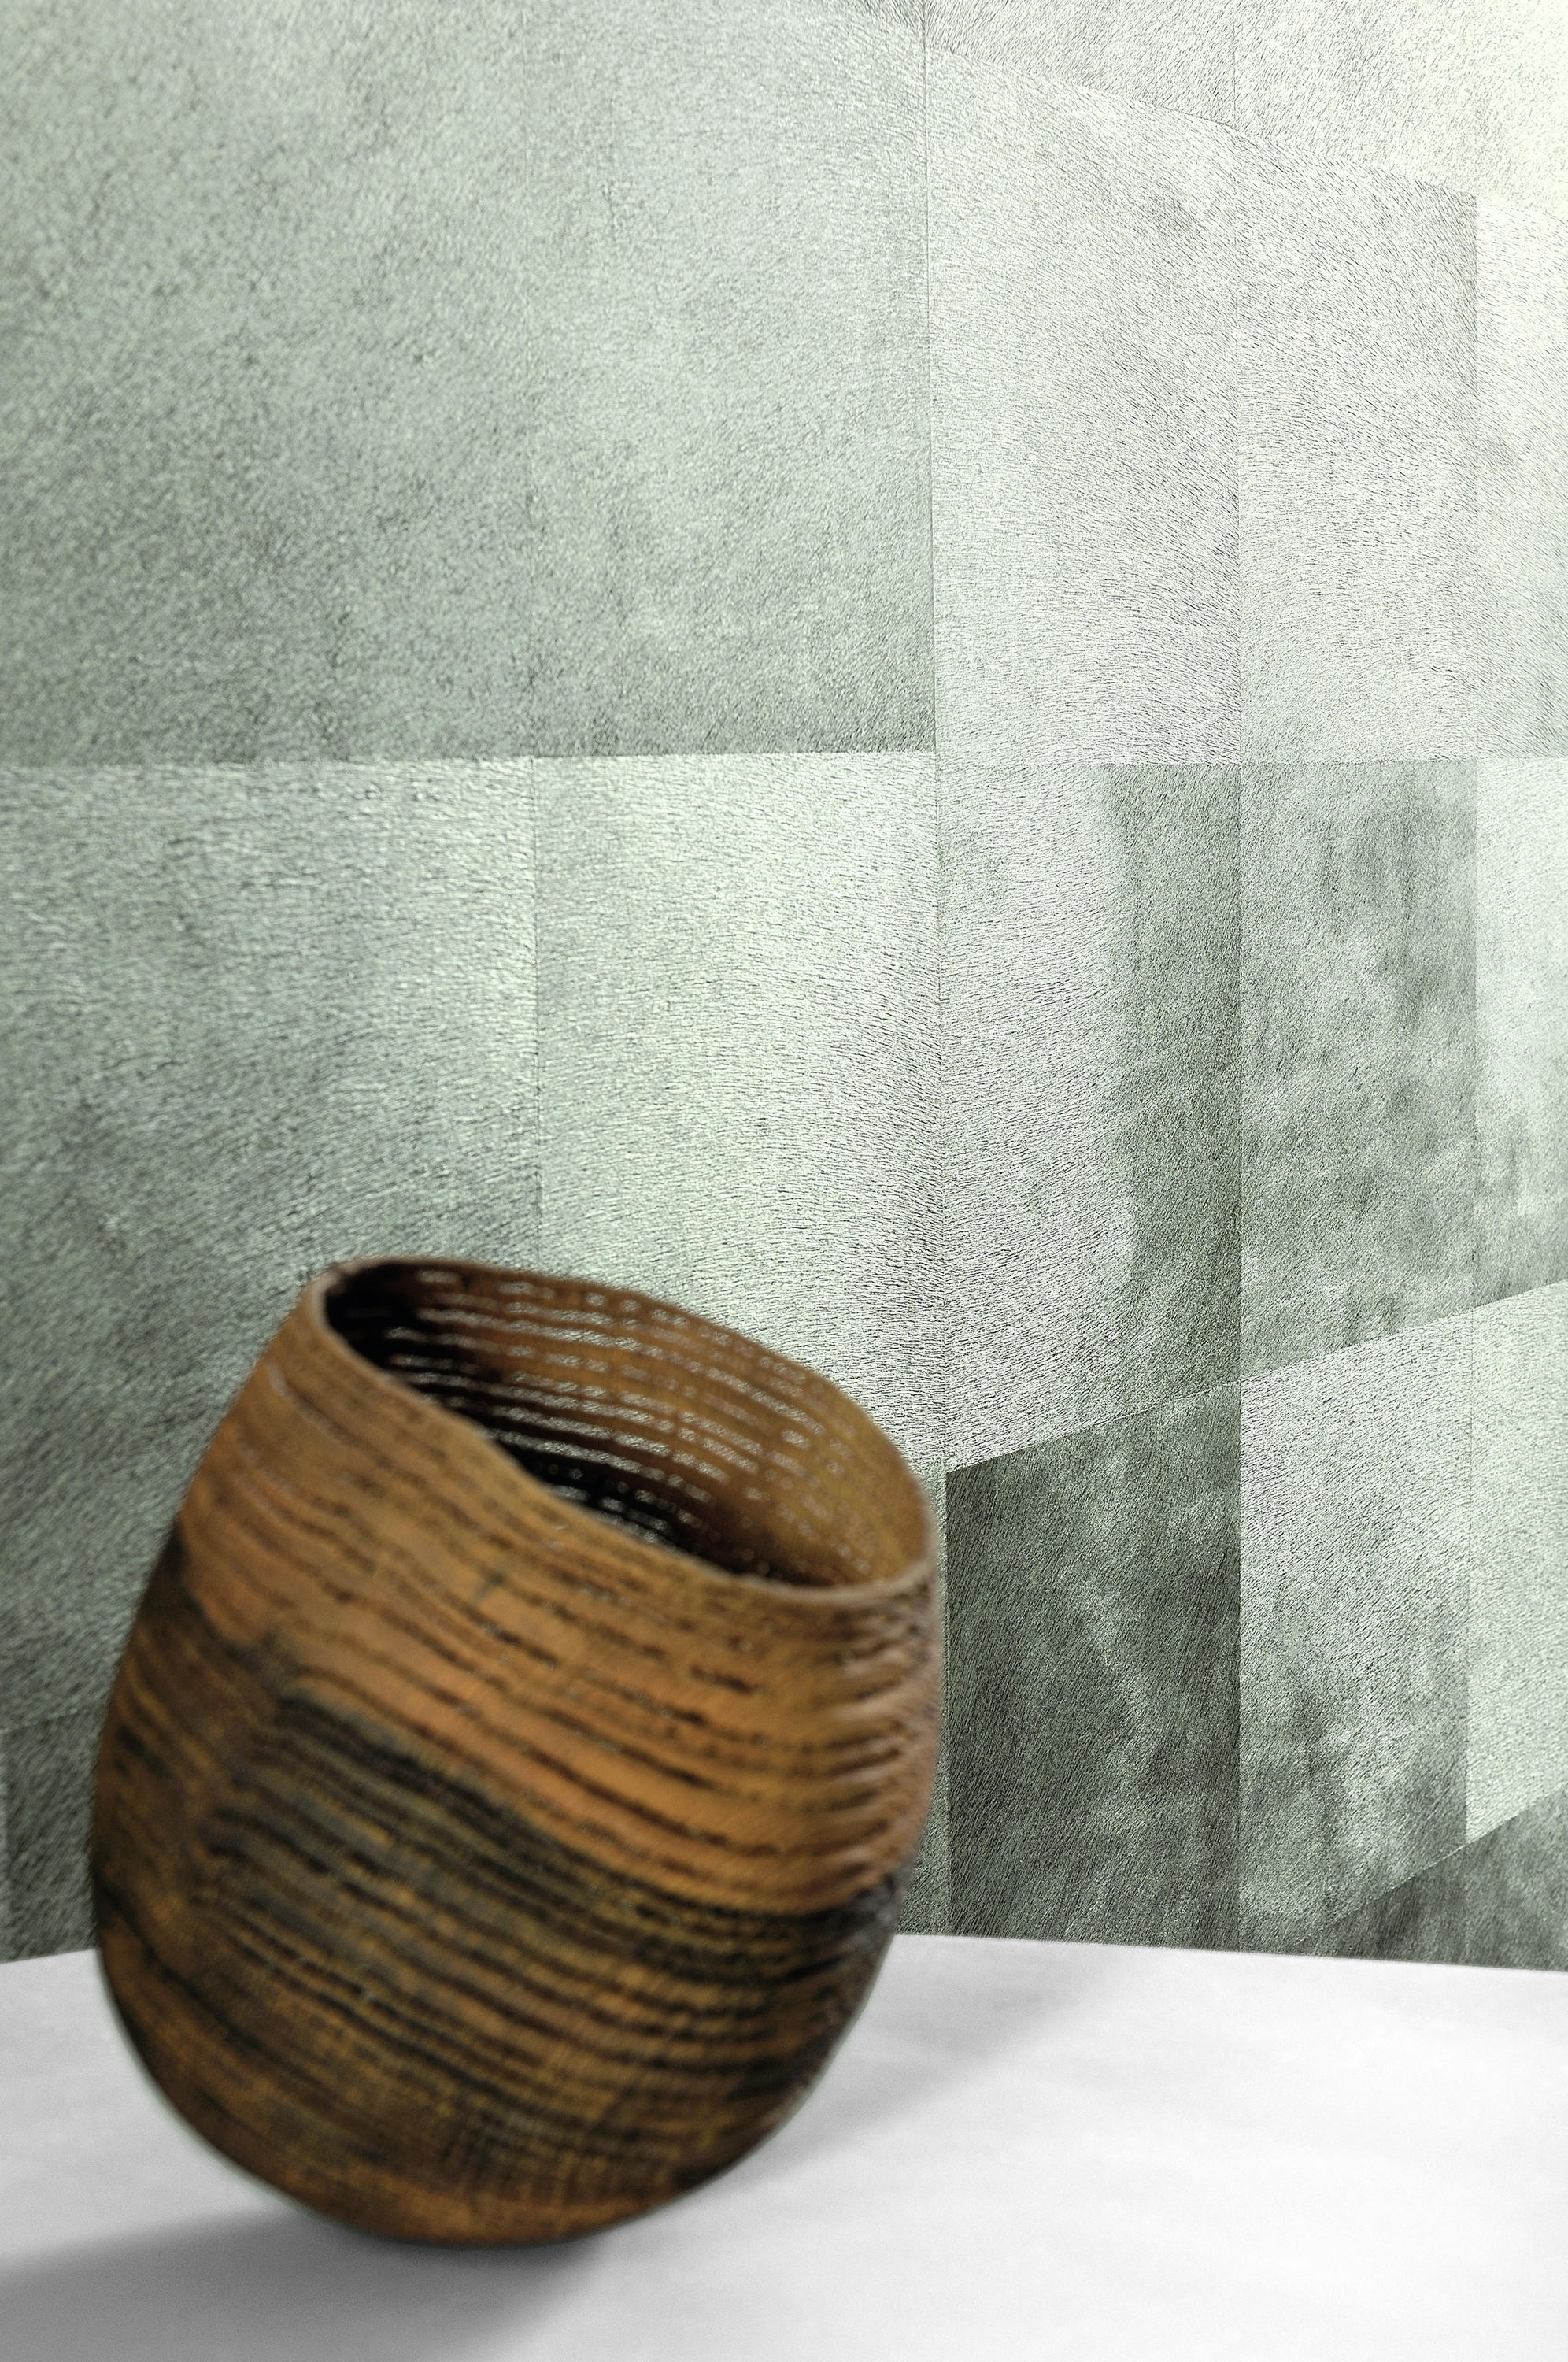 Indompte Movida Vp 625 01 Wall Coverings Wallpapers From Cedcls45n 45a Shower Pull Switch Ambient Images